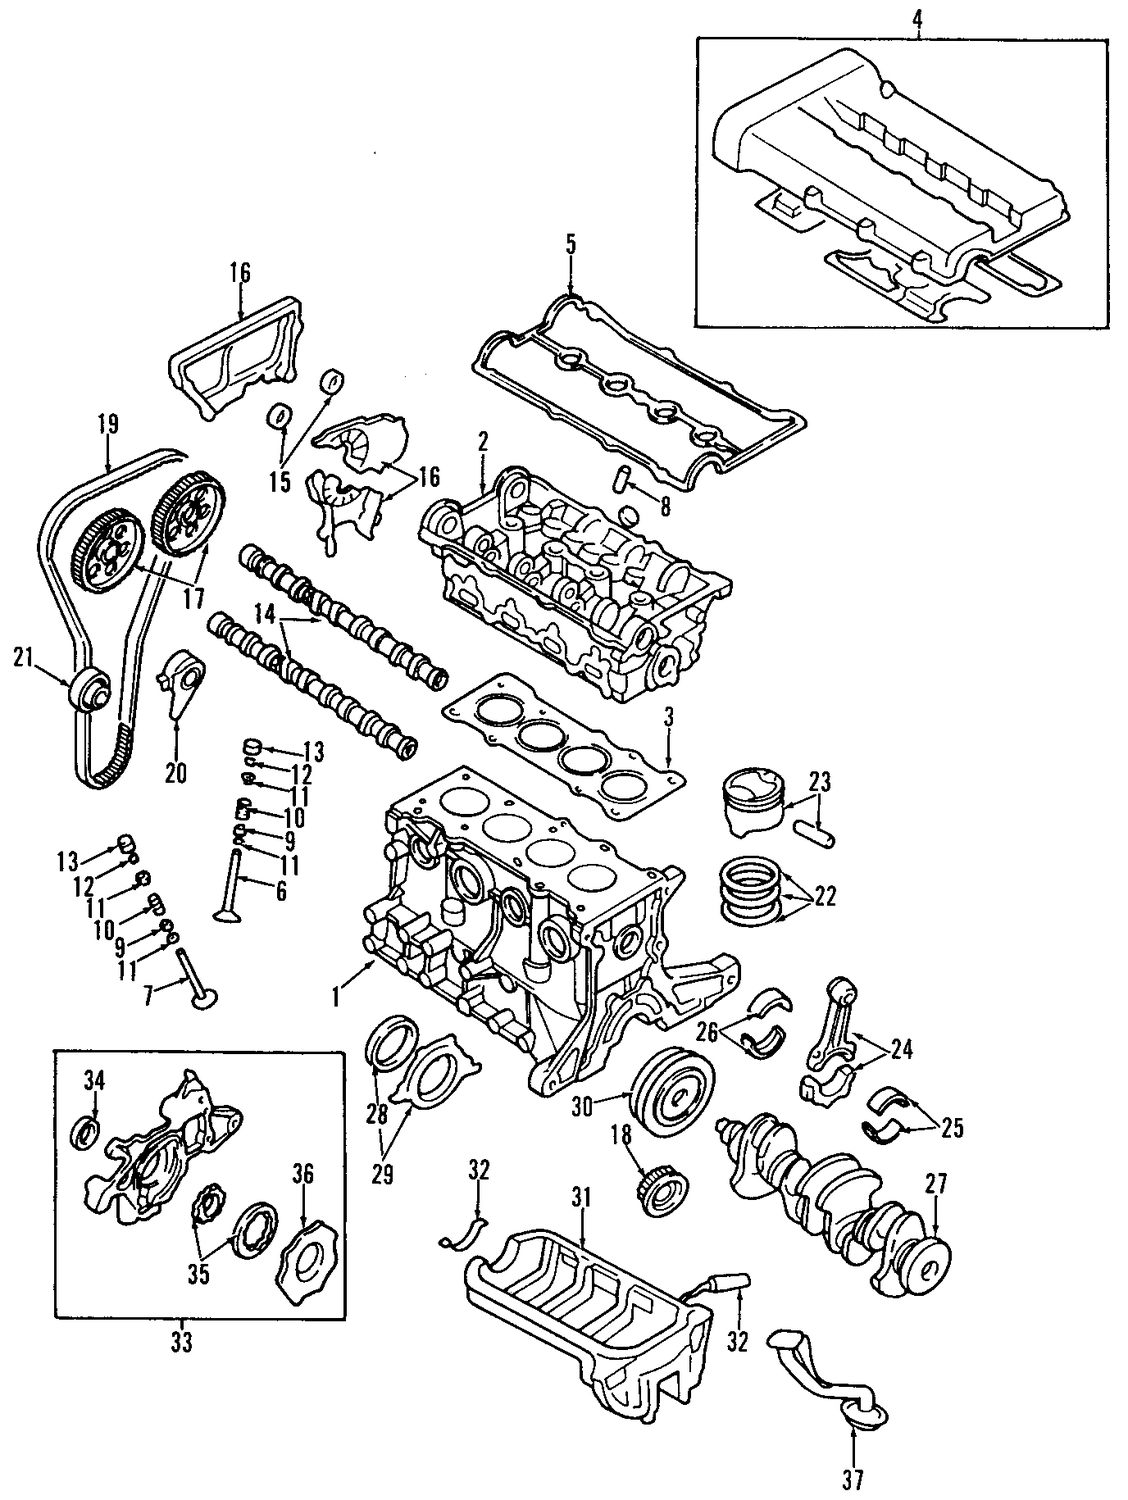 Wiring Diagram Kia Spectra Engine Diagram